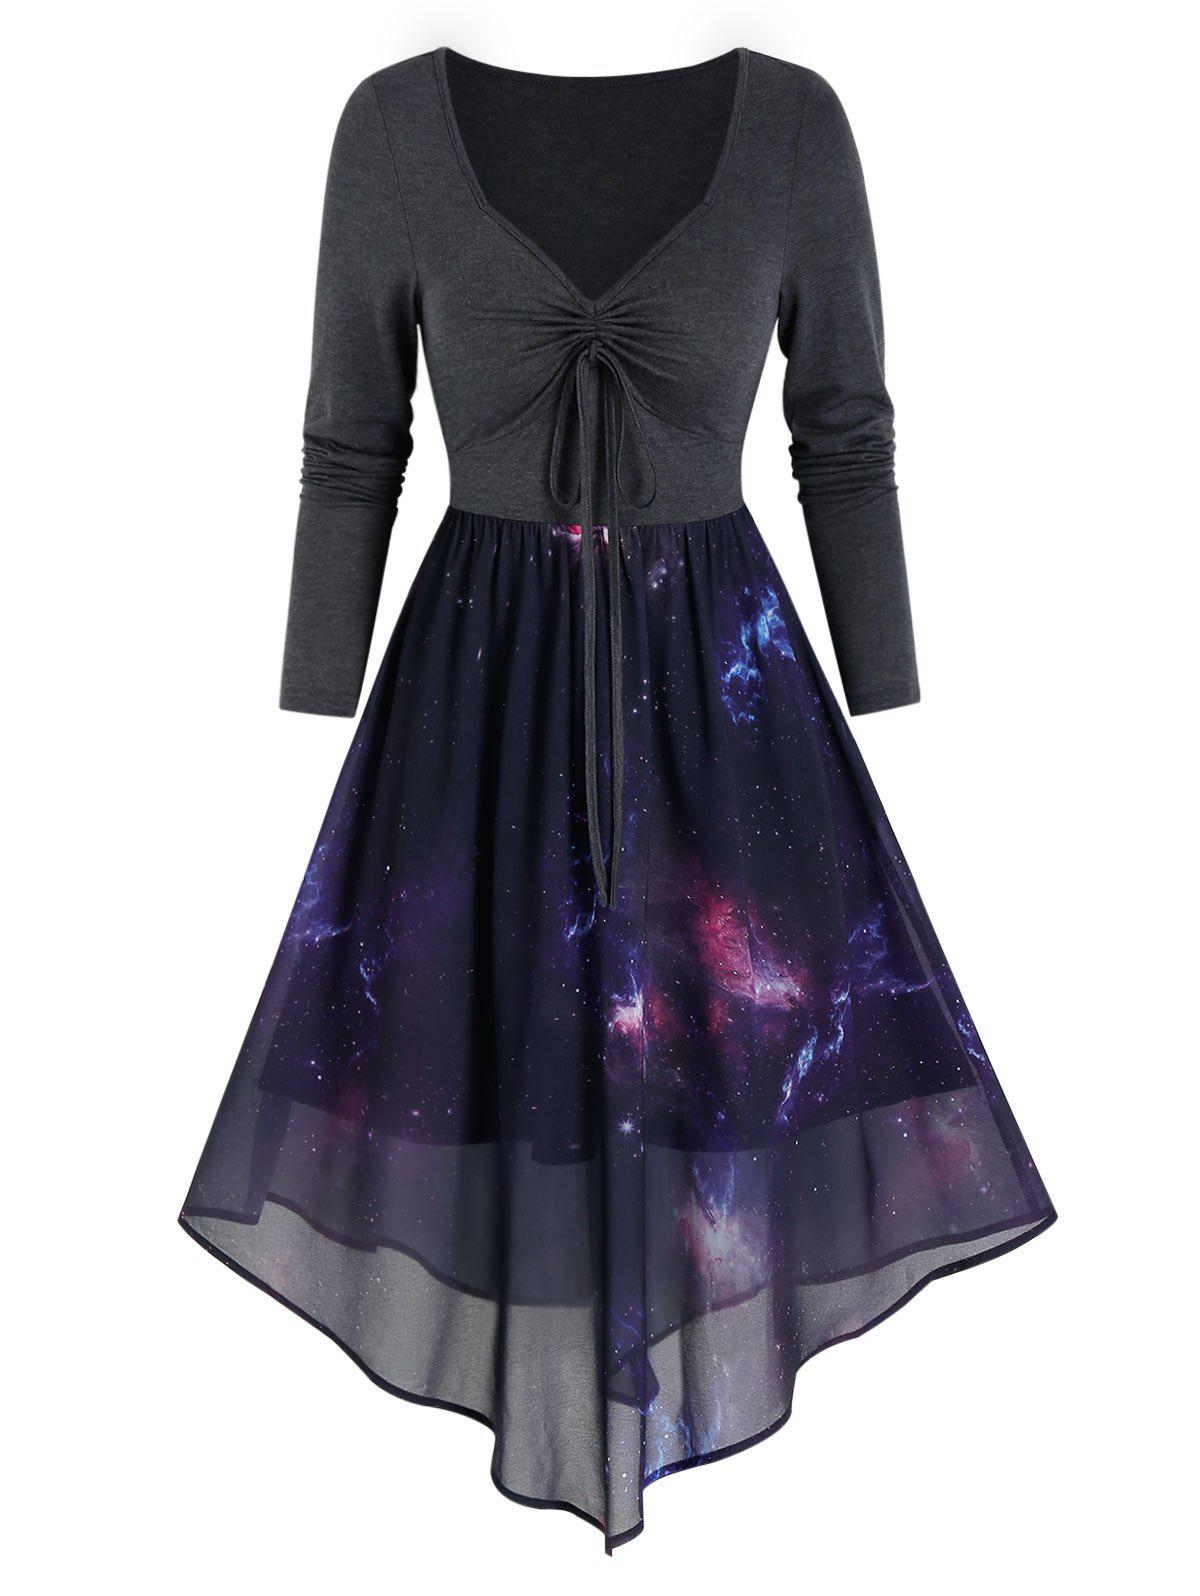 High Waist Starry Print Overlay Mesh Dress - BLACK XL